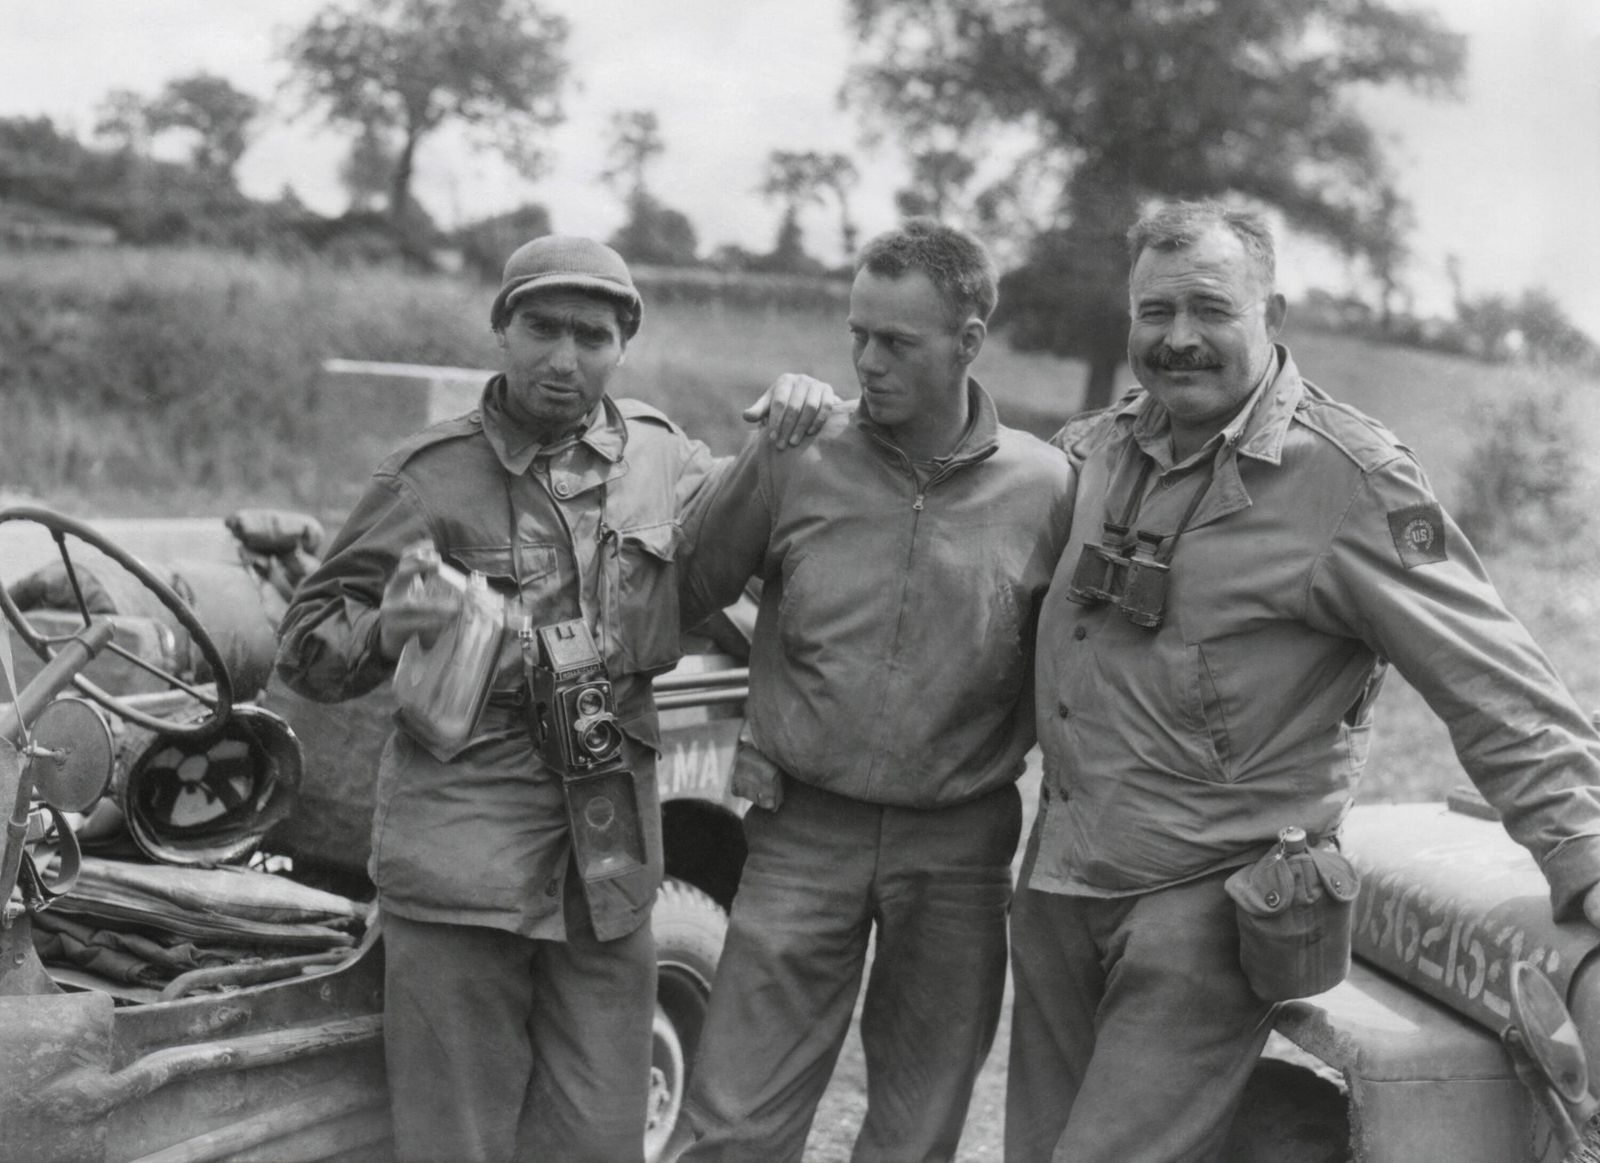 Robert Capa (left) and Ernest Hemingway (right) with their driver U.S. Army driver. They are waiting to follow an Americ